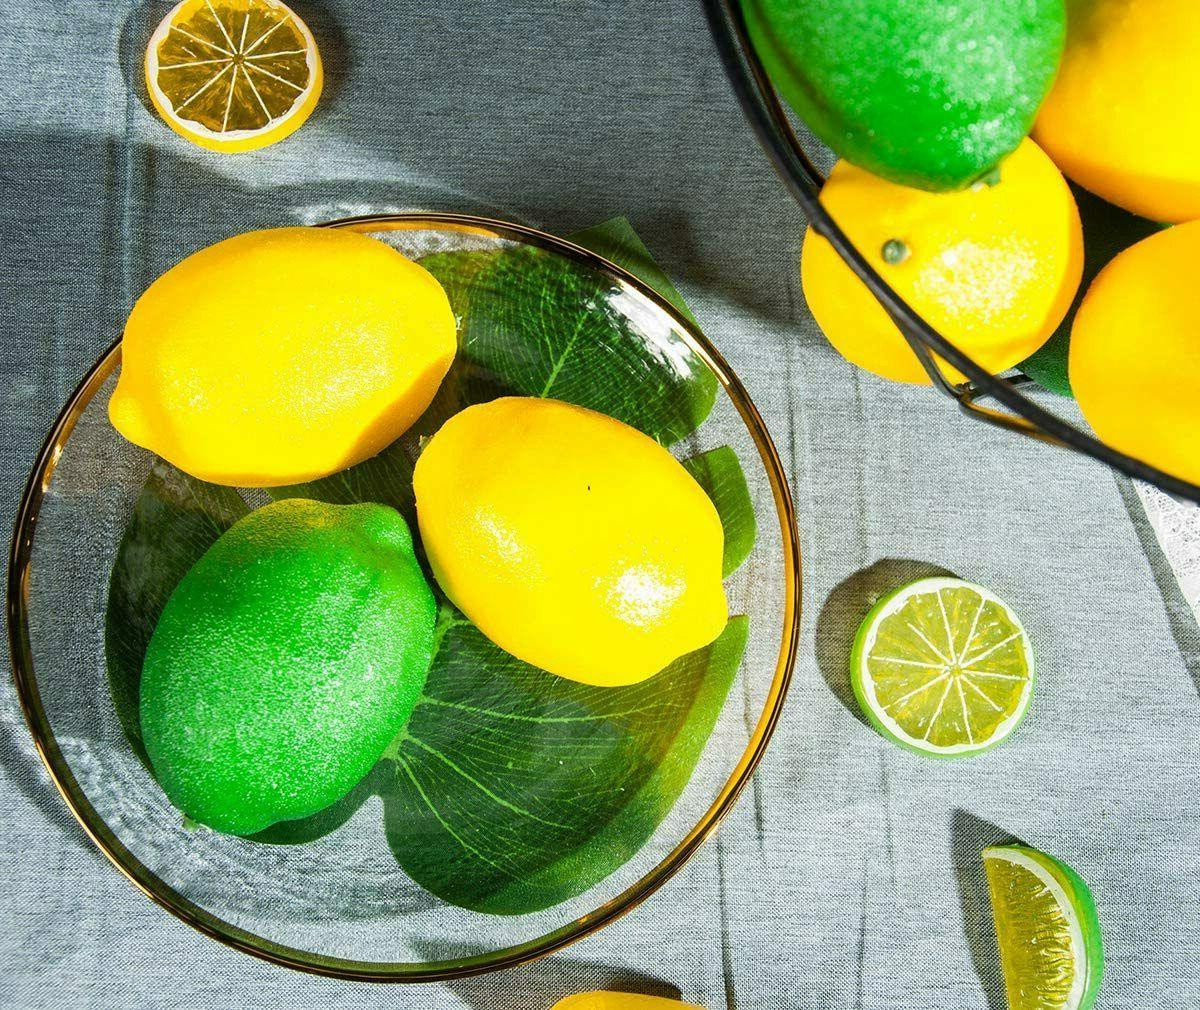 20 PCS Fake Fruit and Limes for Home Decoration